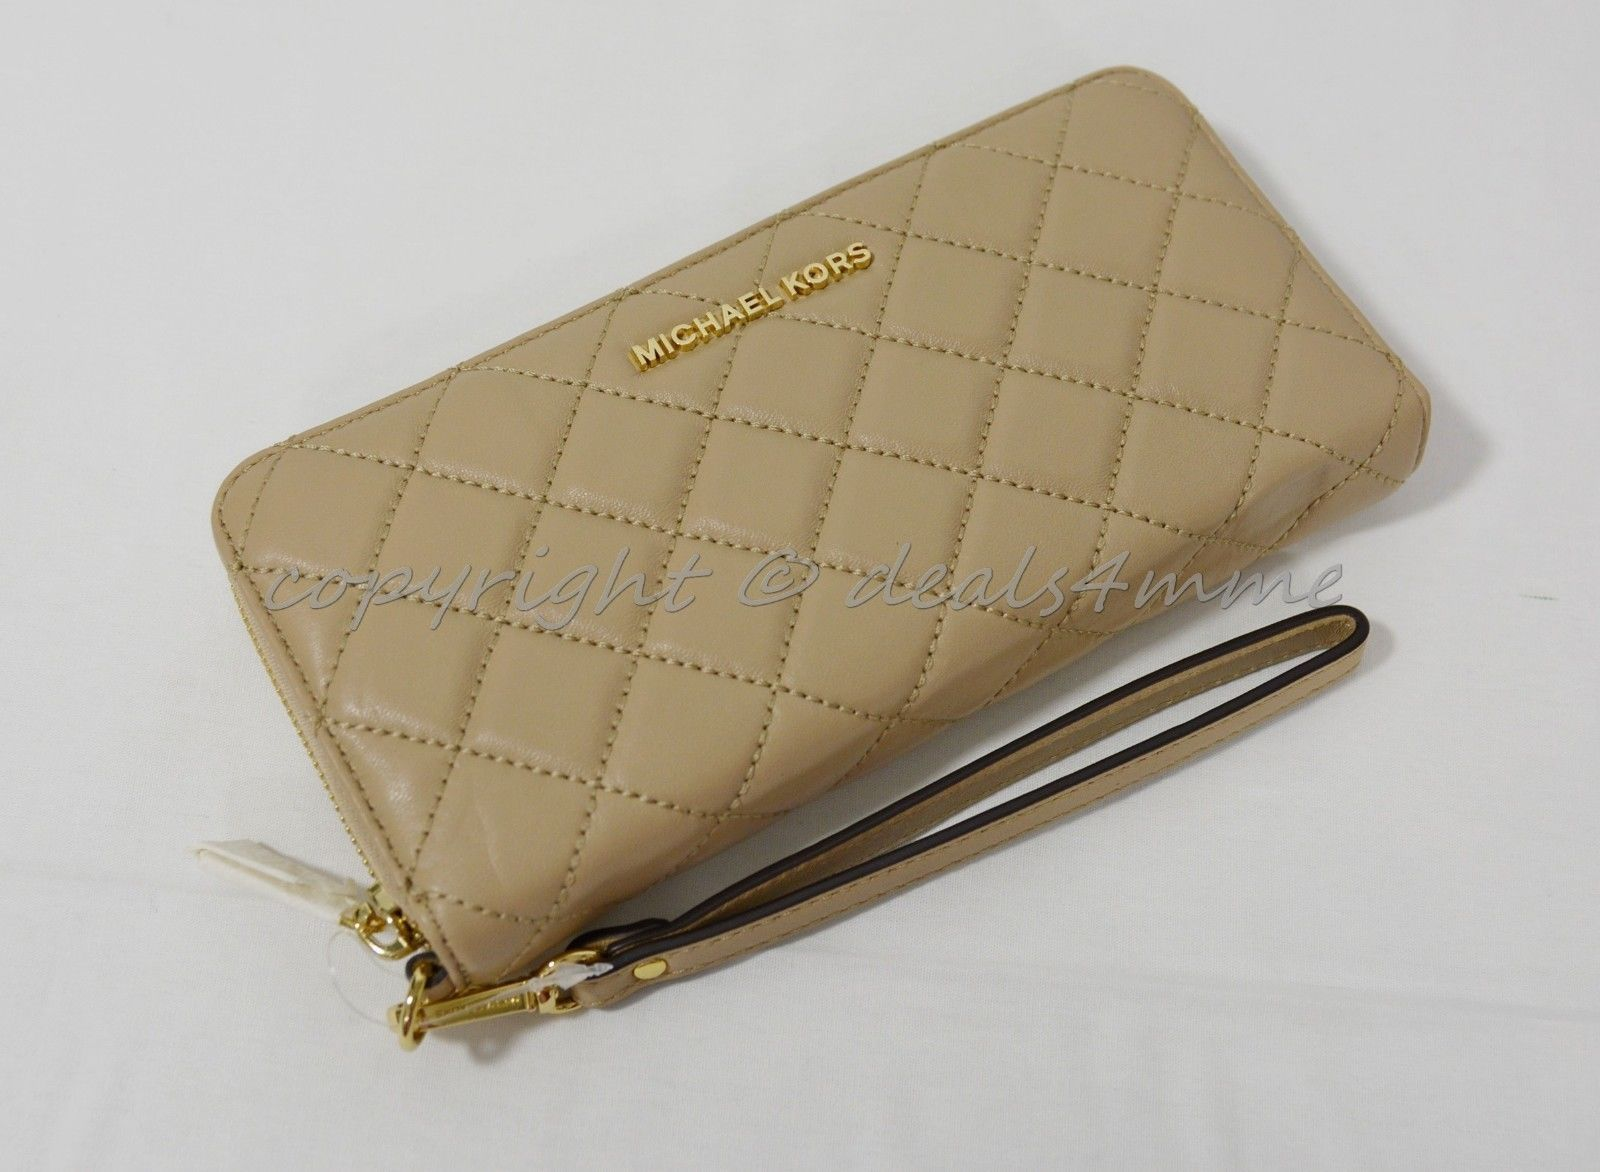 59ef4c6a8392 S l1600. S l1600. Previous. Michael Kors Quilted Leather Continental Zip  Around Wallet Wristlet ...